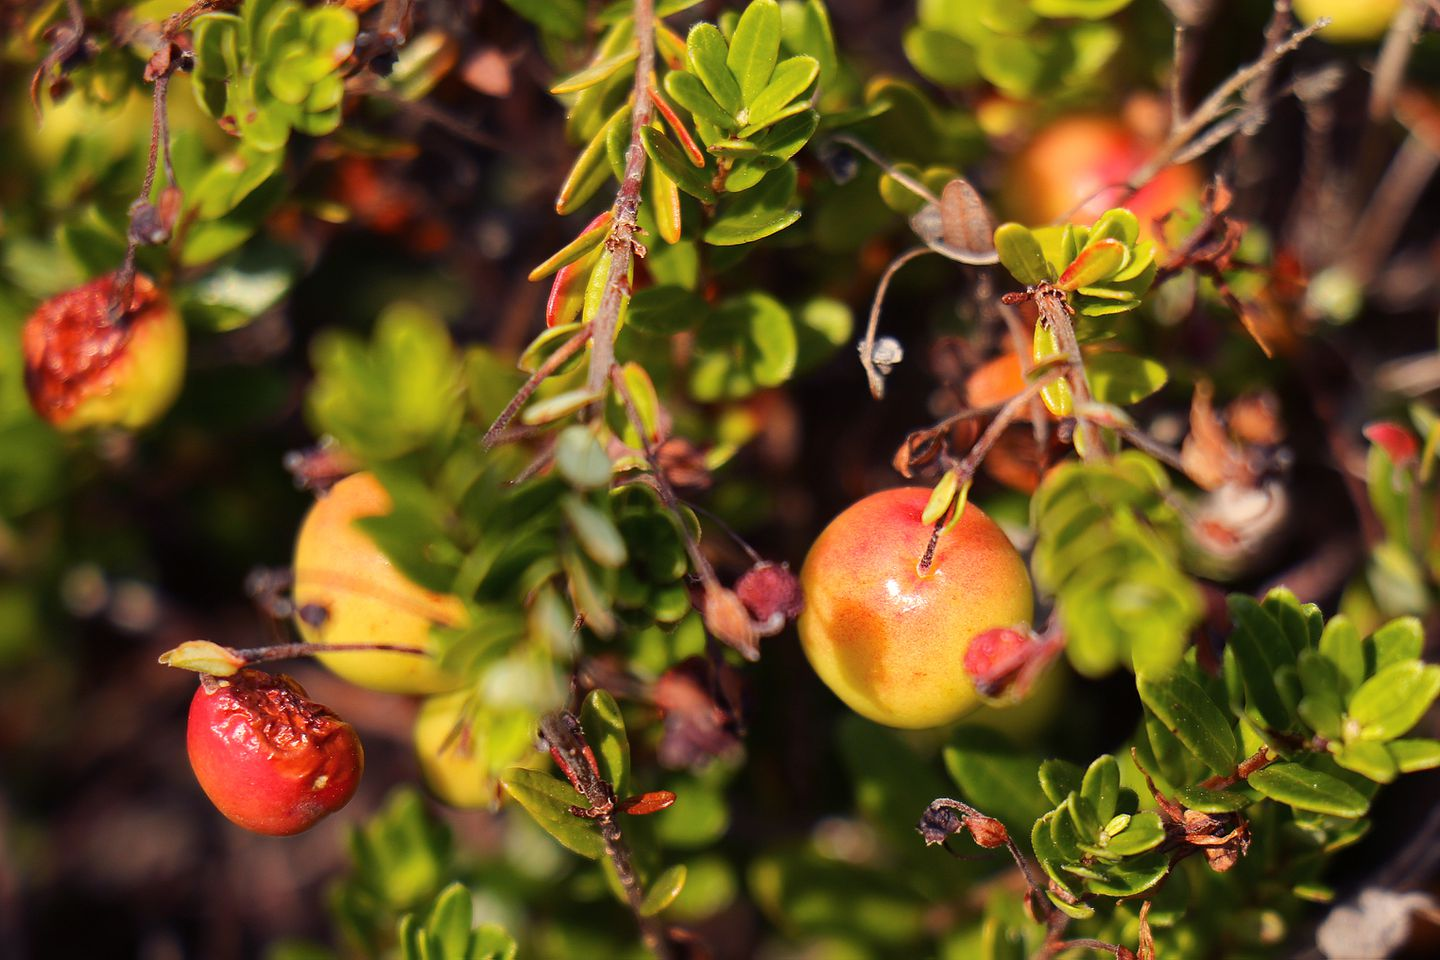 Massachusetts is the nation's oldest cranberry-growing region.